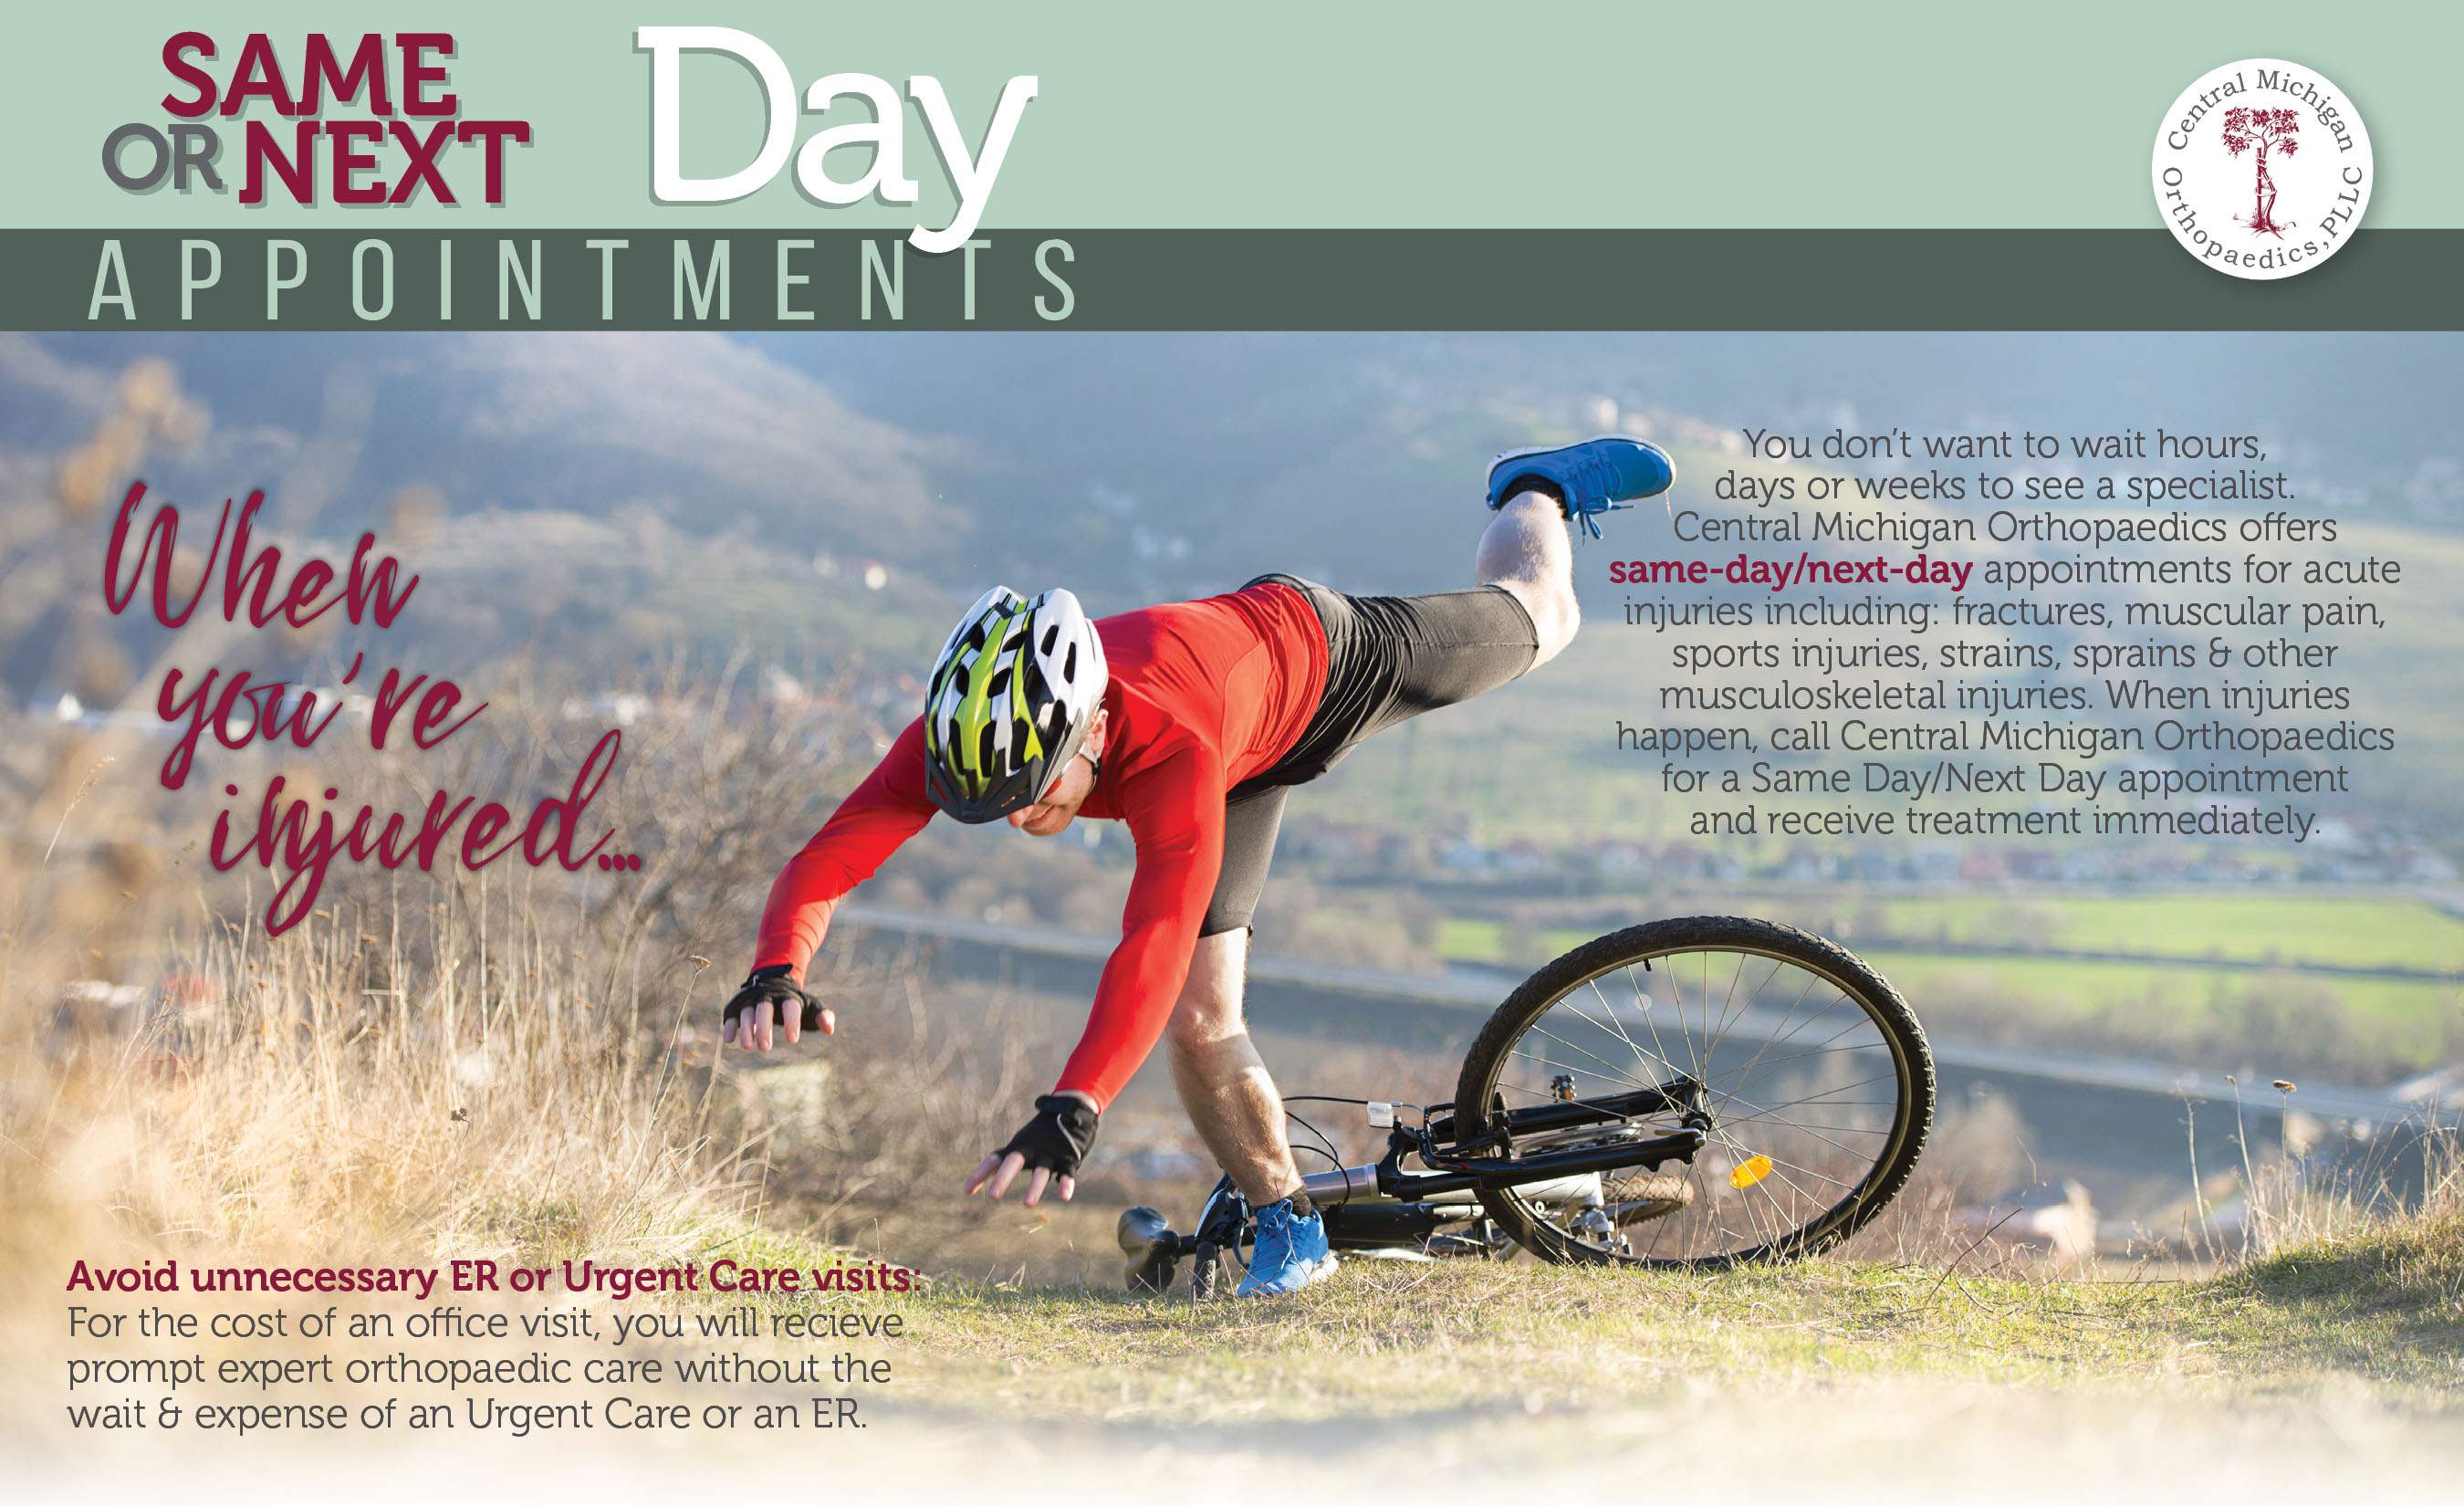 Same Day Appointments available at Central Michigan Orthopaedics